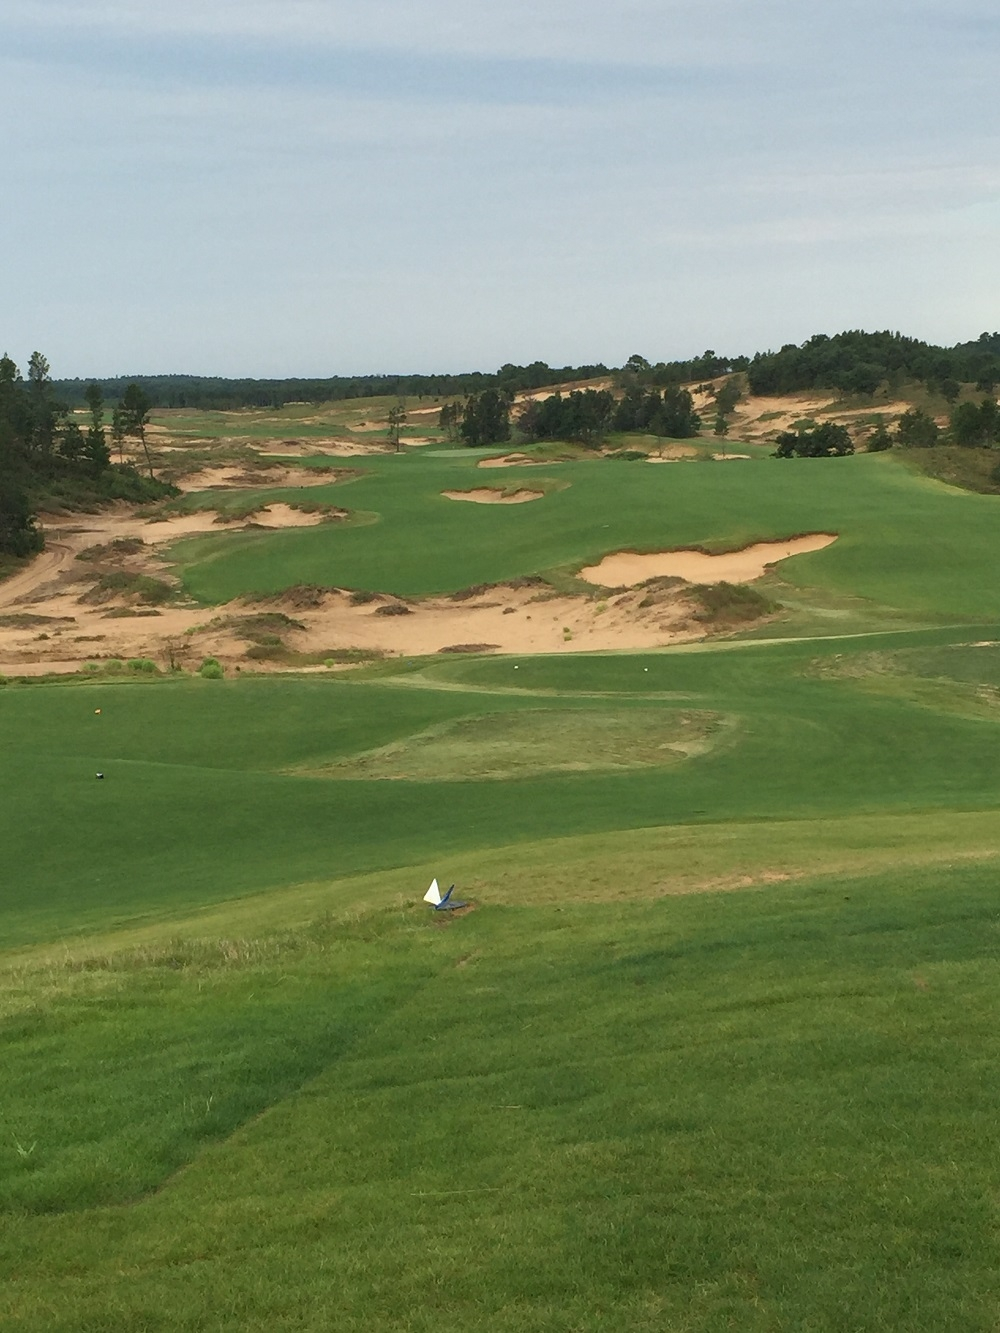 golf course review, golf course critique, golf blogger, the golf sage, golf blog, Sand Valley Resort, Sand Valley Golf, Bandon Dunes, Coore, Crenshaw, Nekoosa, Wisconsin, August 2016